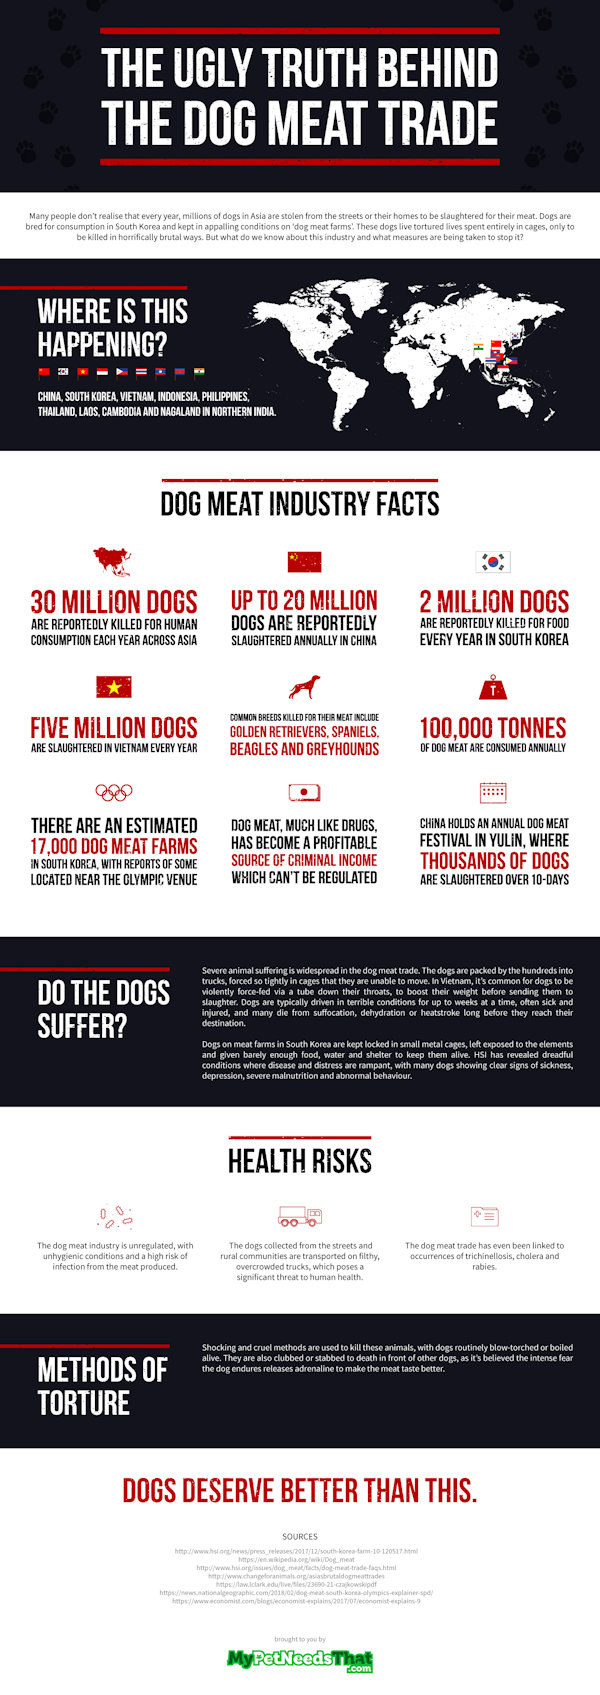 Ugly Truth Behind The Dog Meat Trade